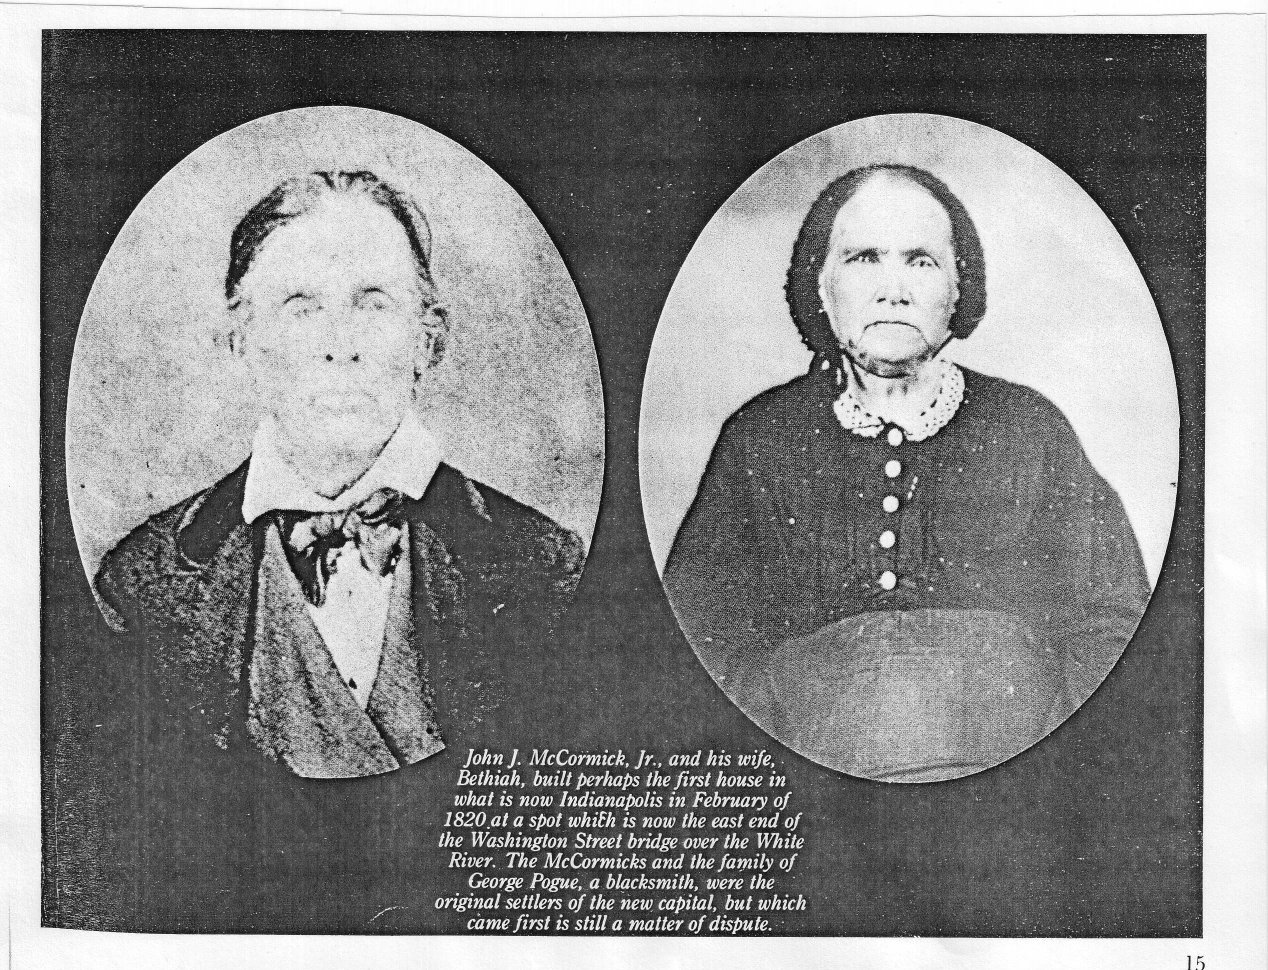 .John J. McCormick Jr. and his wife Bethiah.